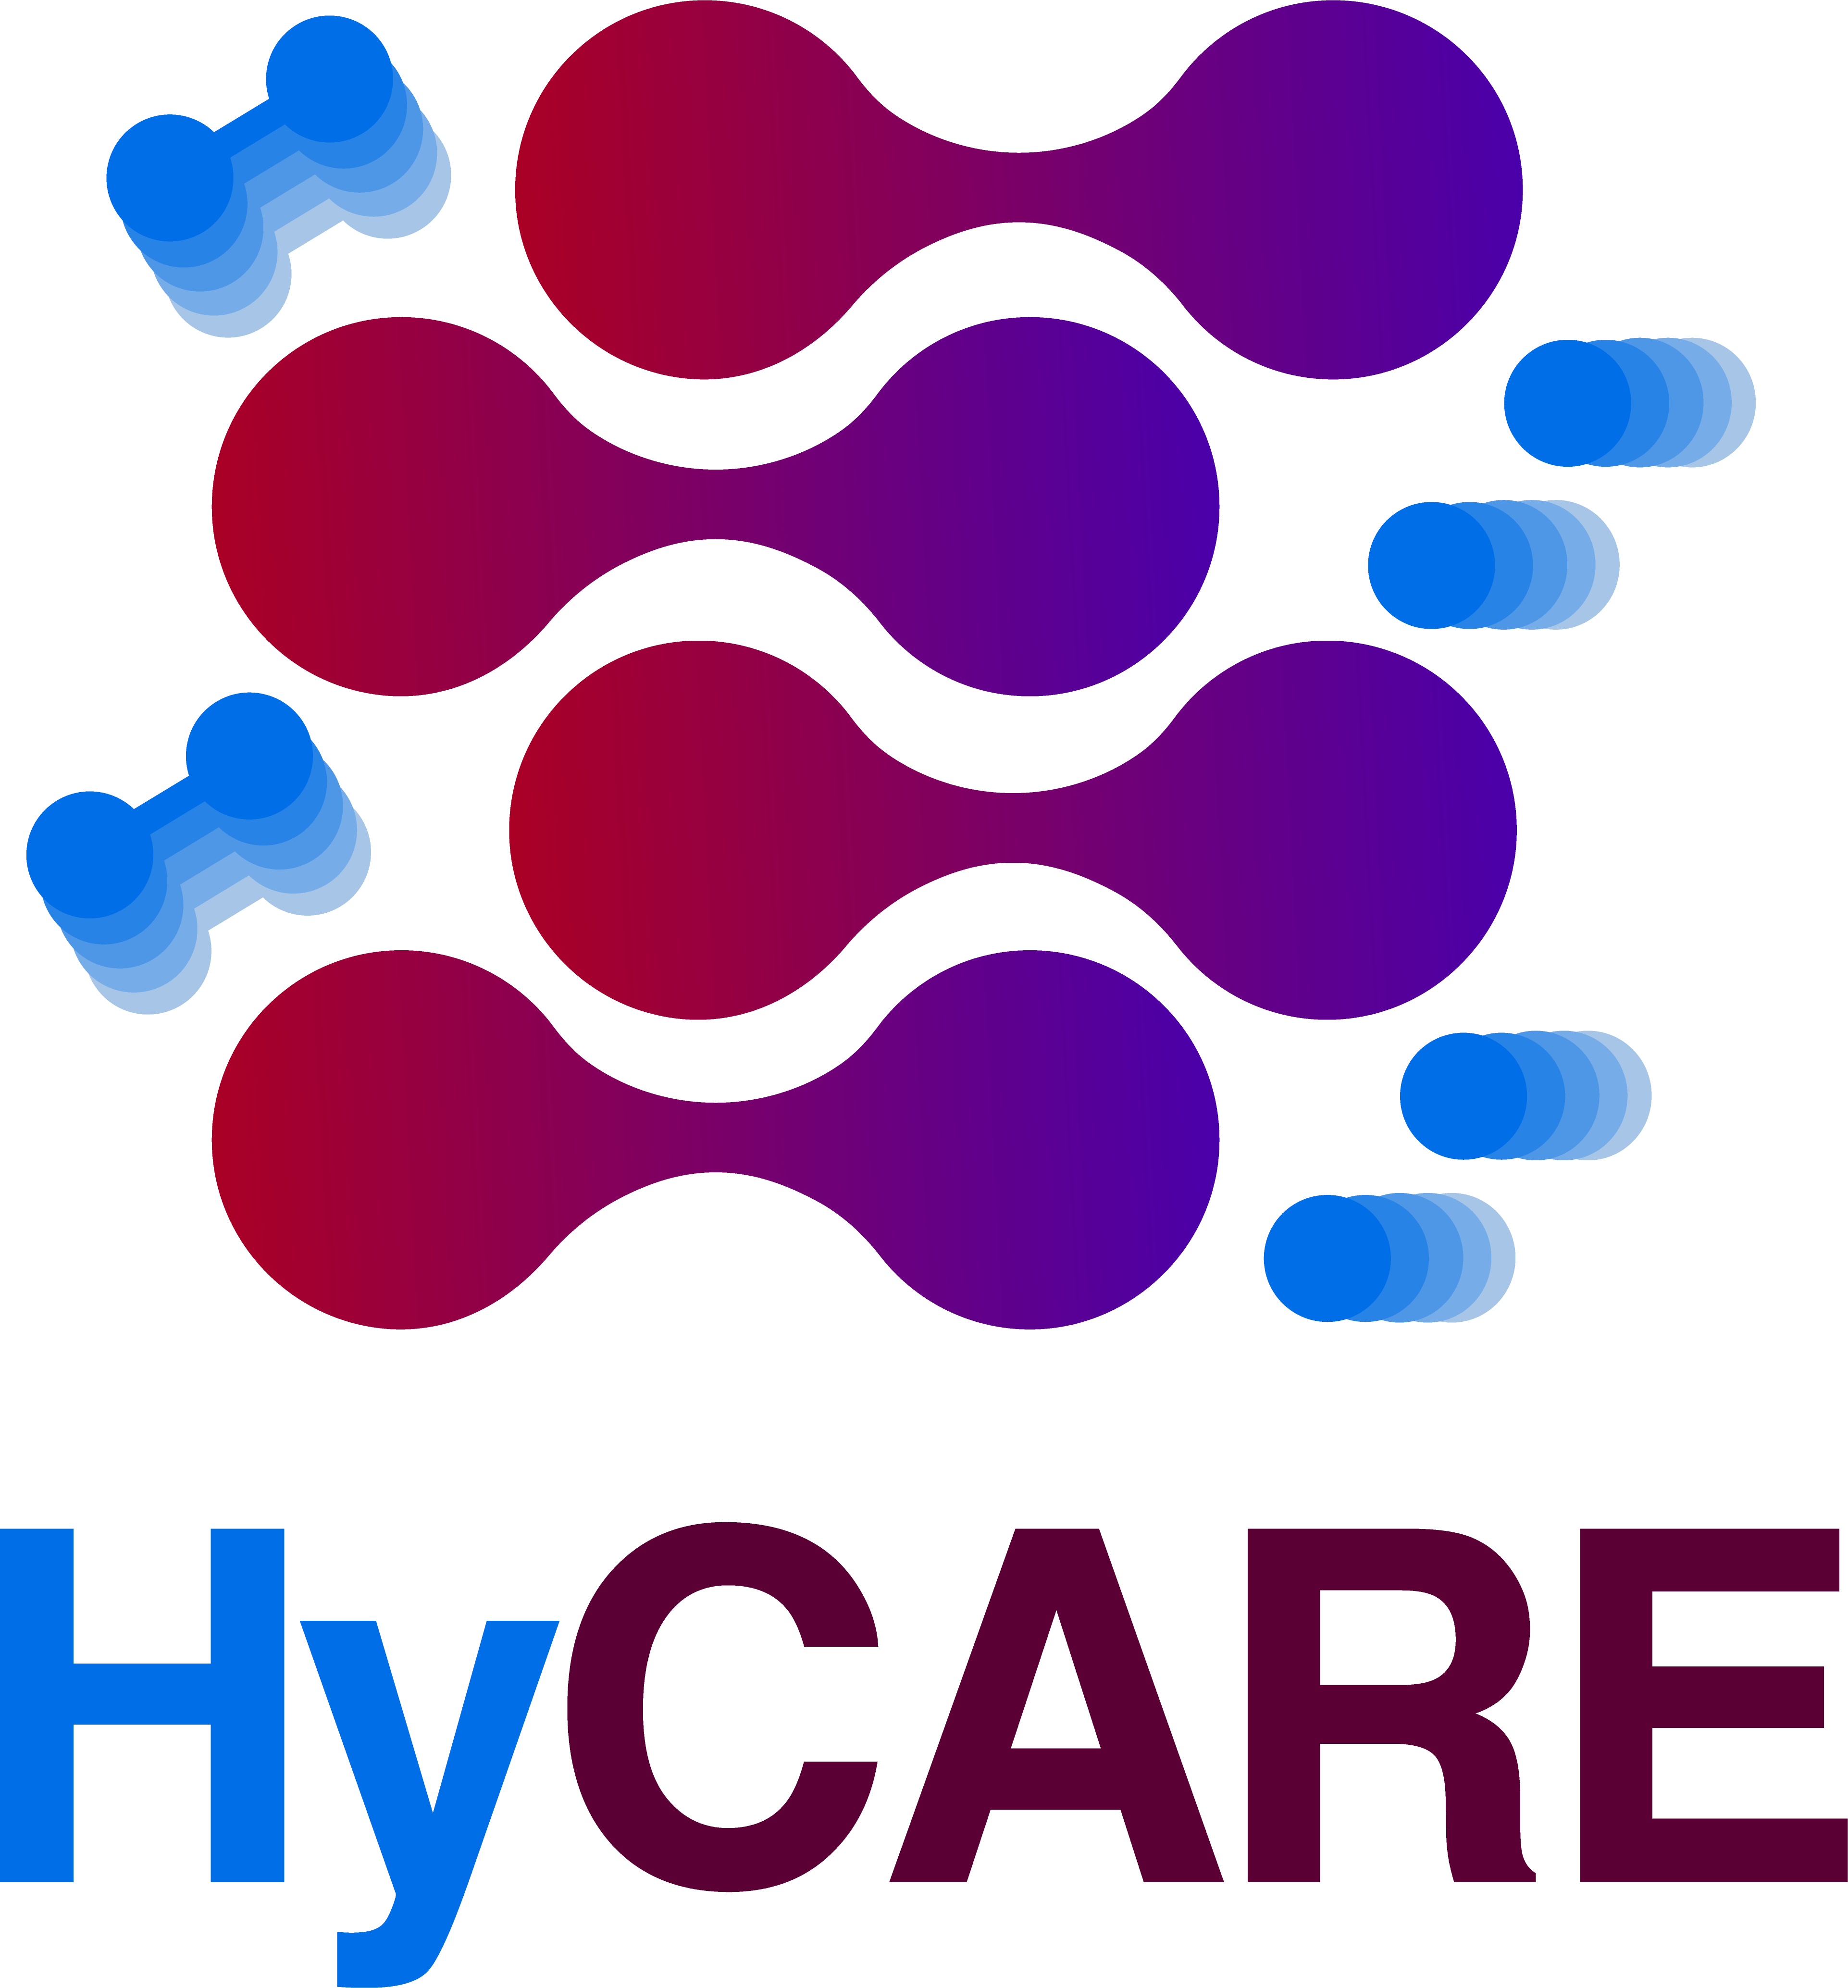 HyCARE-Project